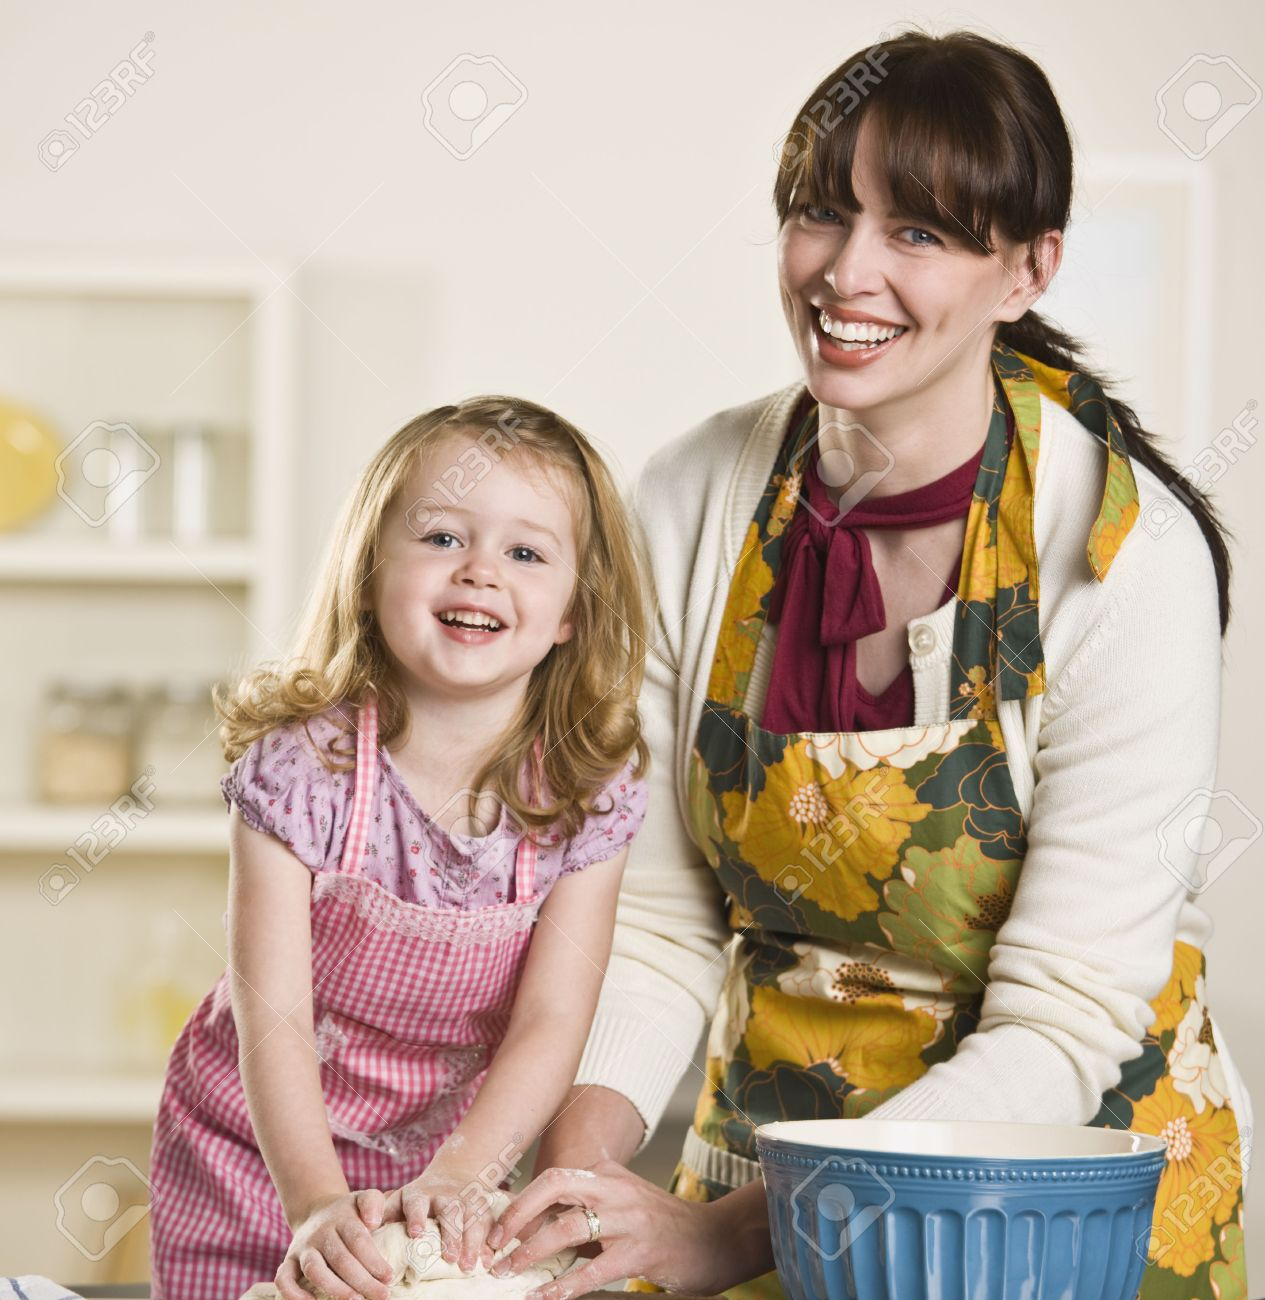 Brunette Mom And Blond Daughter Making Bread On The Kitchen Counter While Wearing Aprons